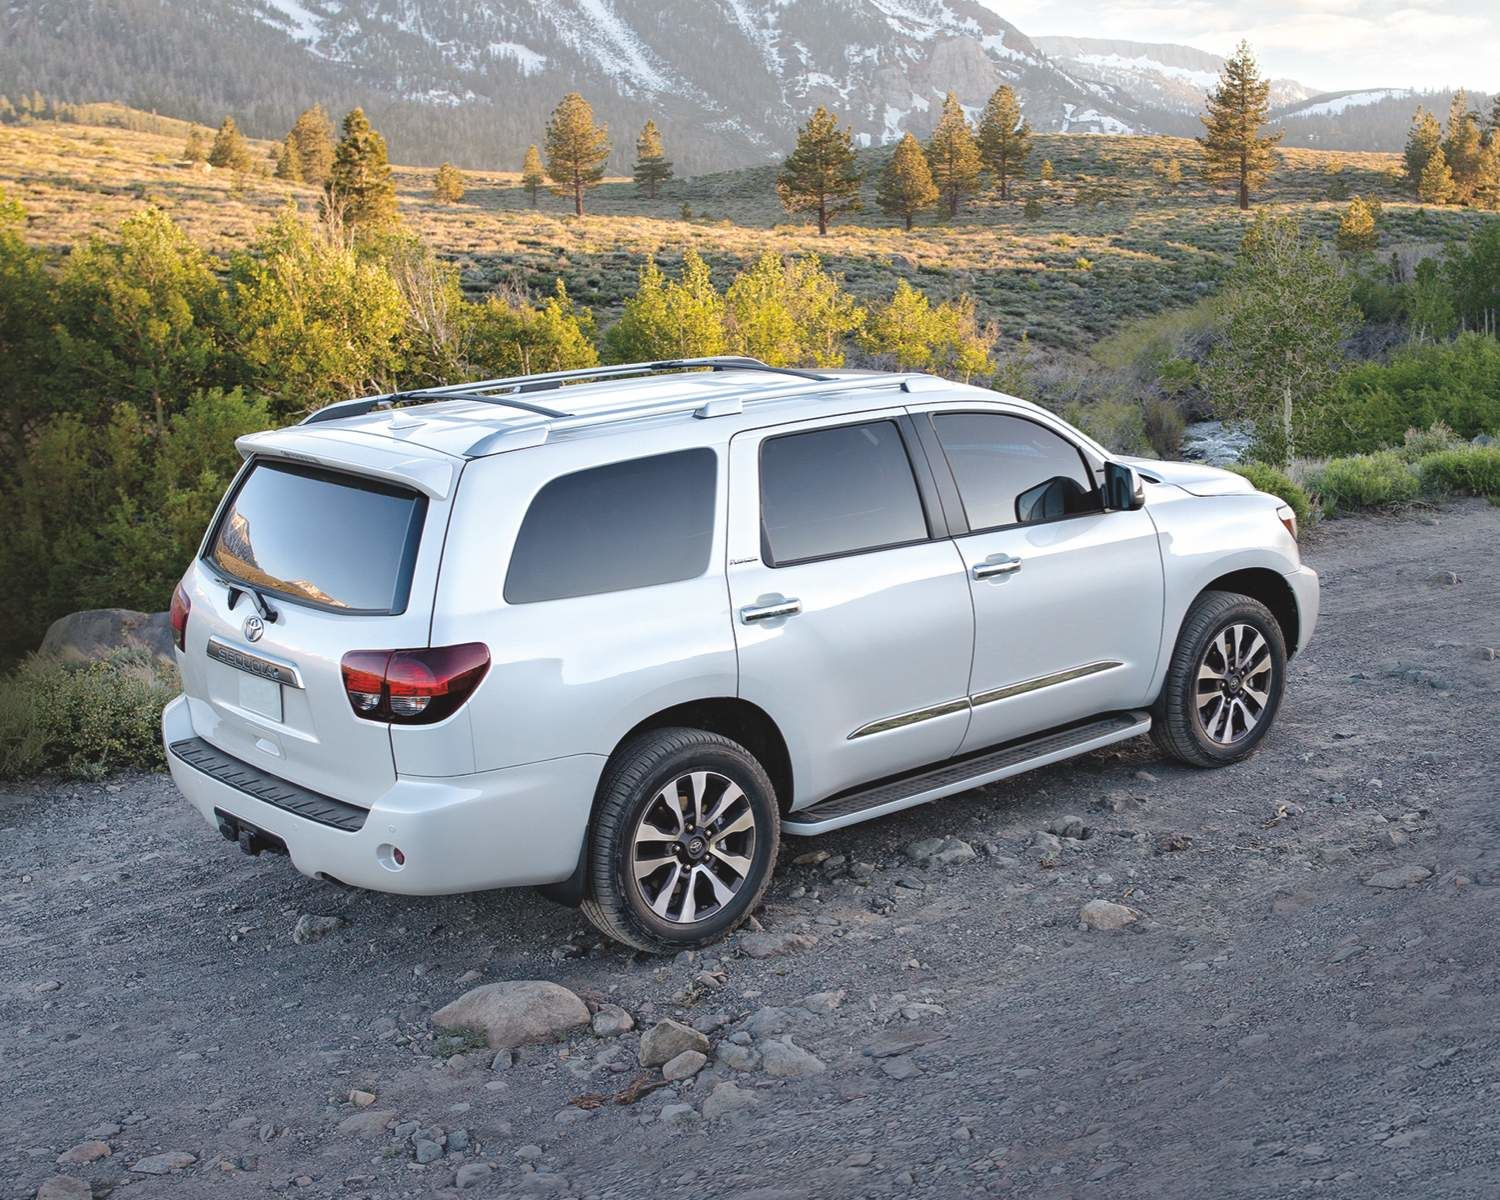 Rear side view of Toyota Sequoia on a gravel road